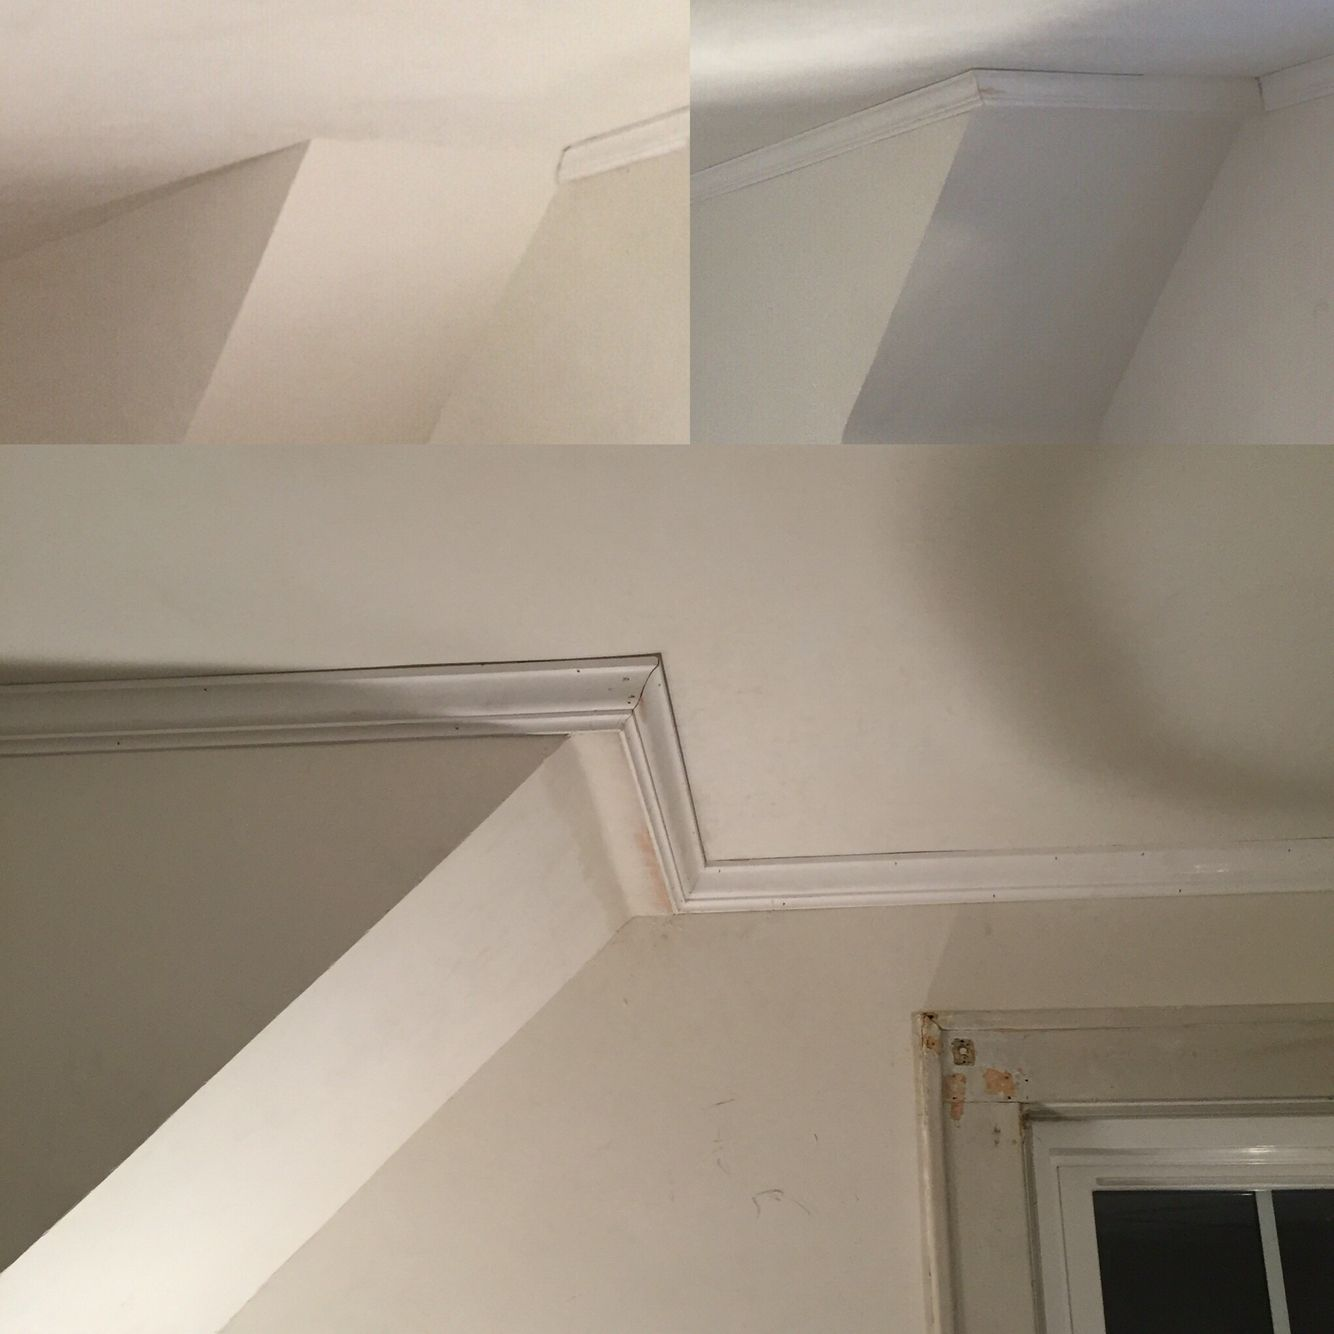 Solution To Crown Molding In A Room Mixed With 90 Degree And 45 Degree Walls A Mini False Wall False Ceiling Design False Ceiling Ceiling Beams Living Room